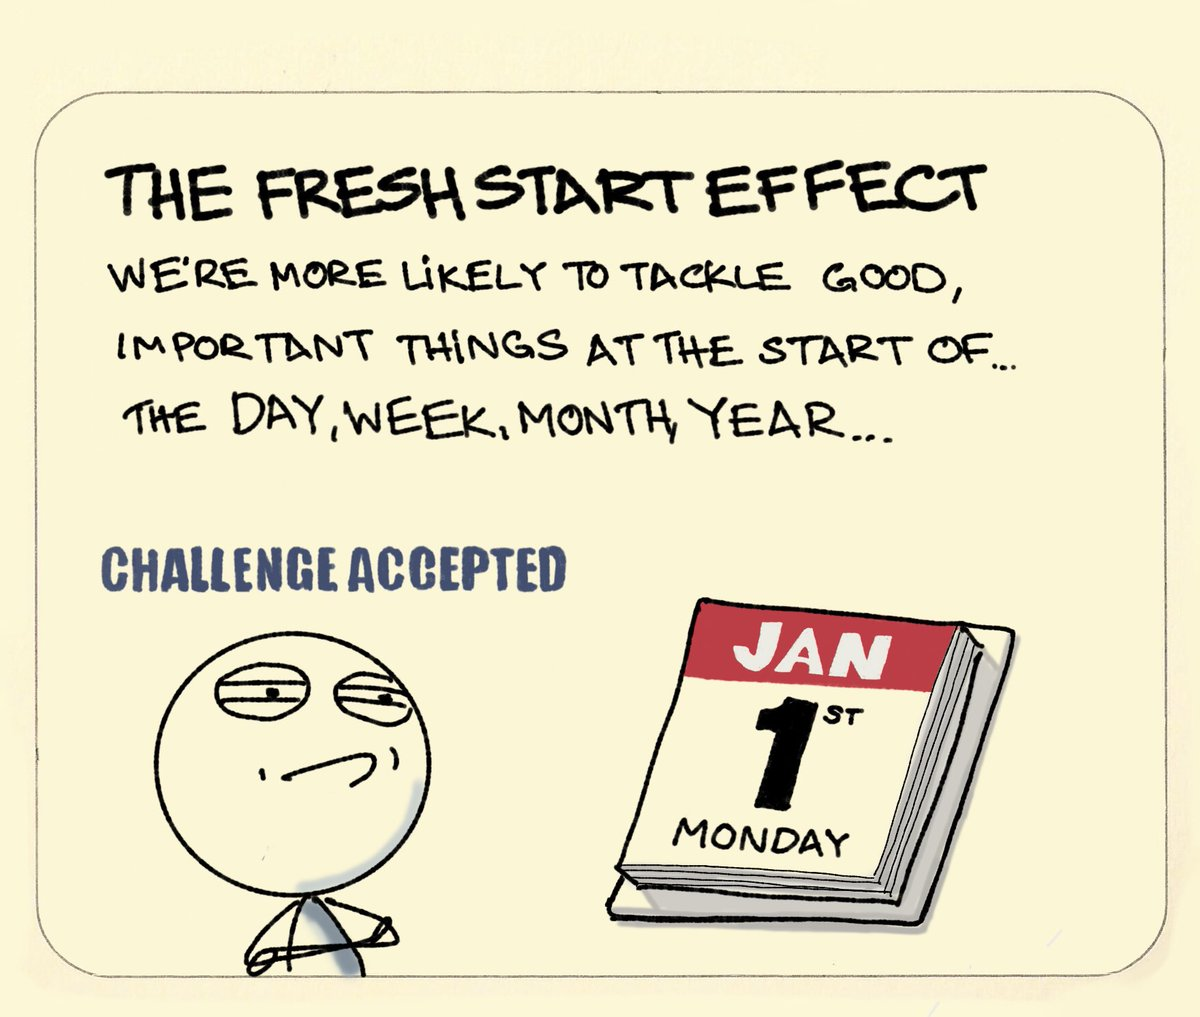 The Fresh Start Effect: we're more likely to tackle good, important things at the start of... the day, week, month, year, ...